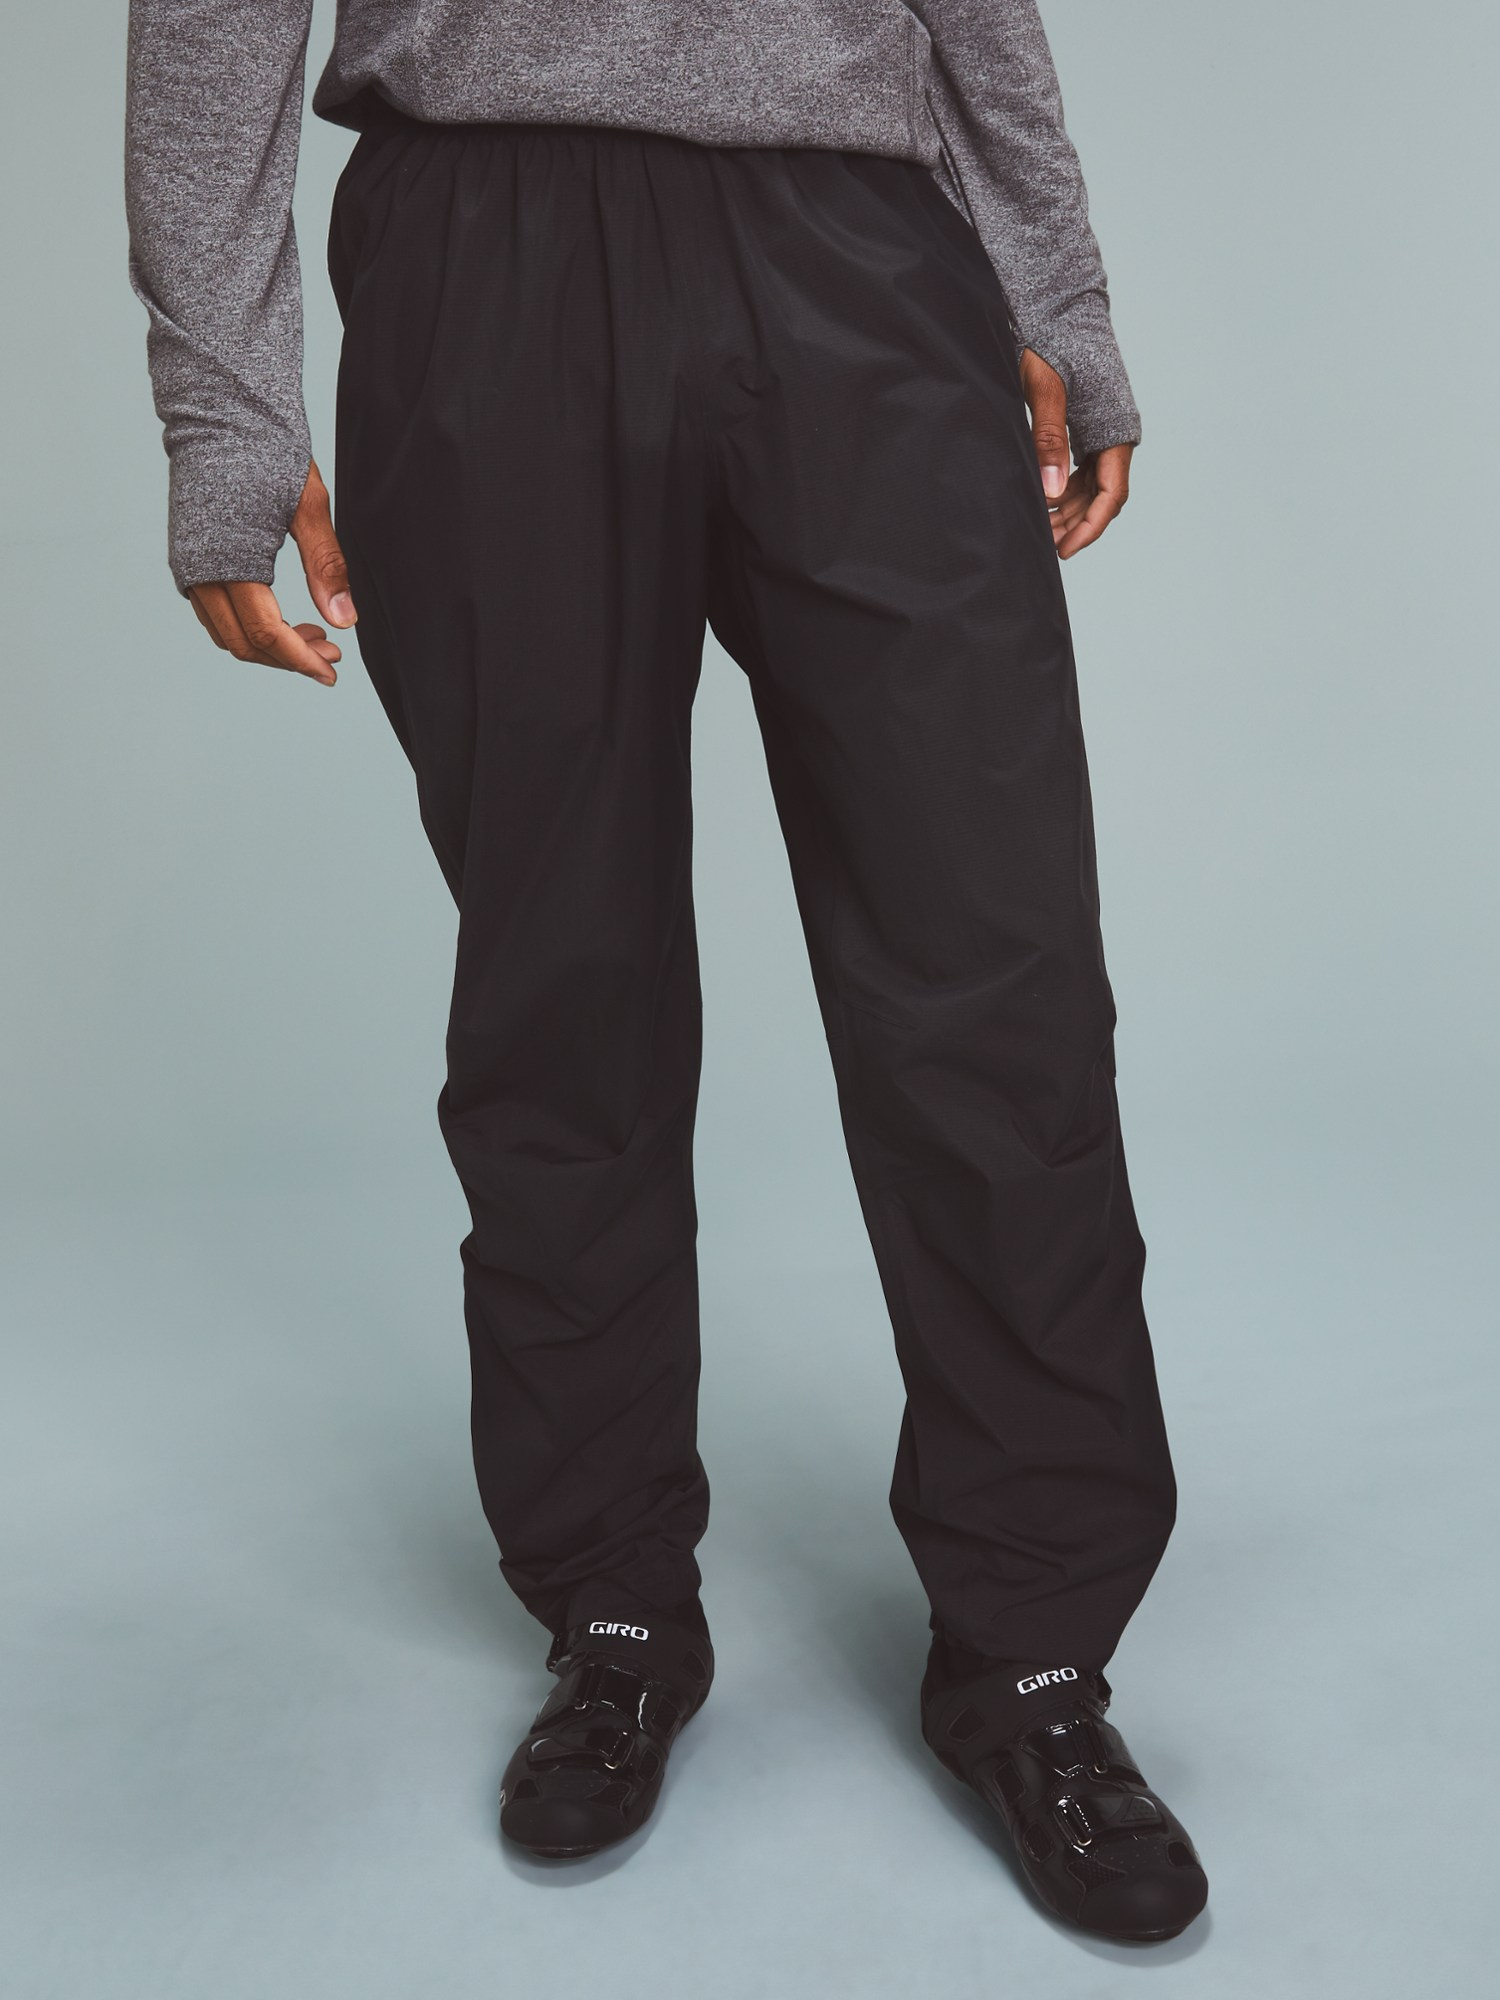 Co-op Cycles Rain Cycling Pants - Men's